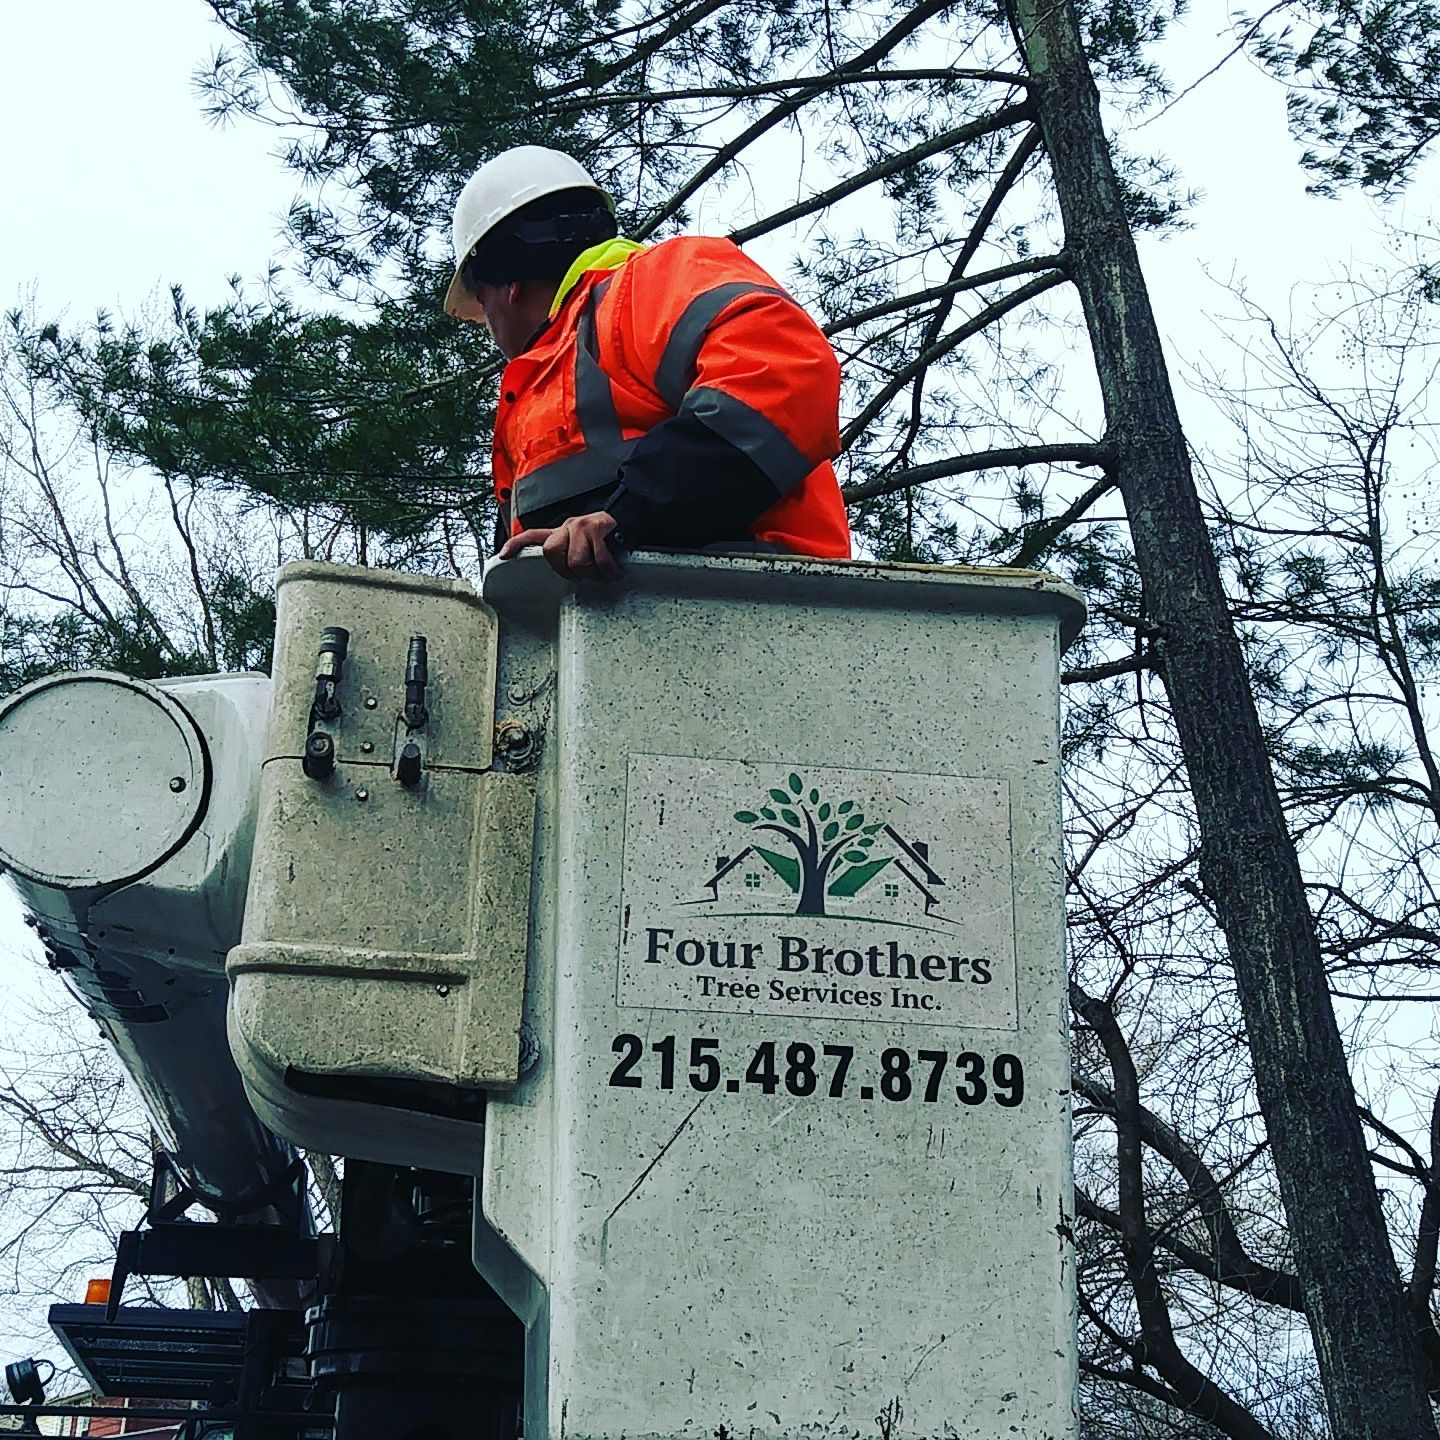 Four Brothers Tree Service Inc.